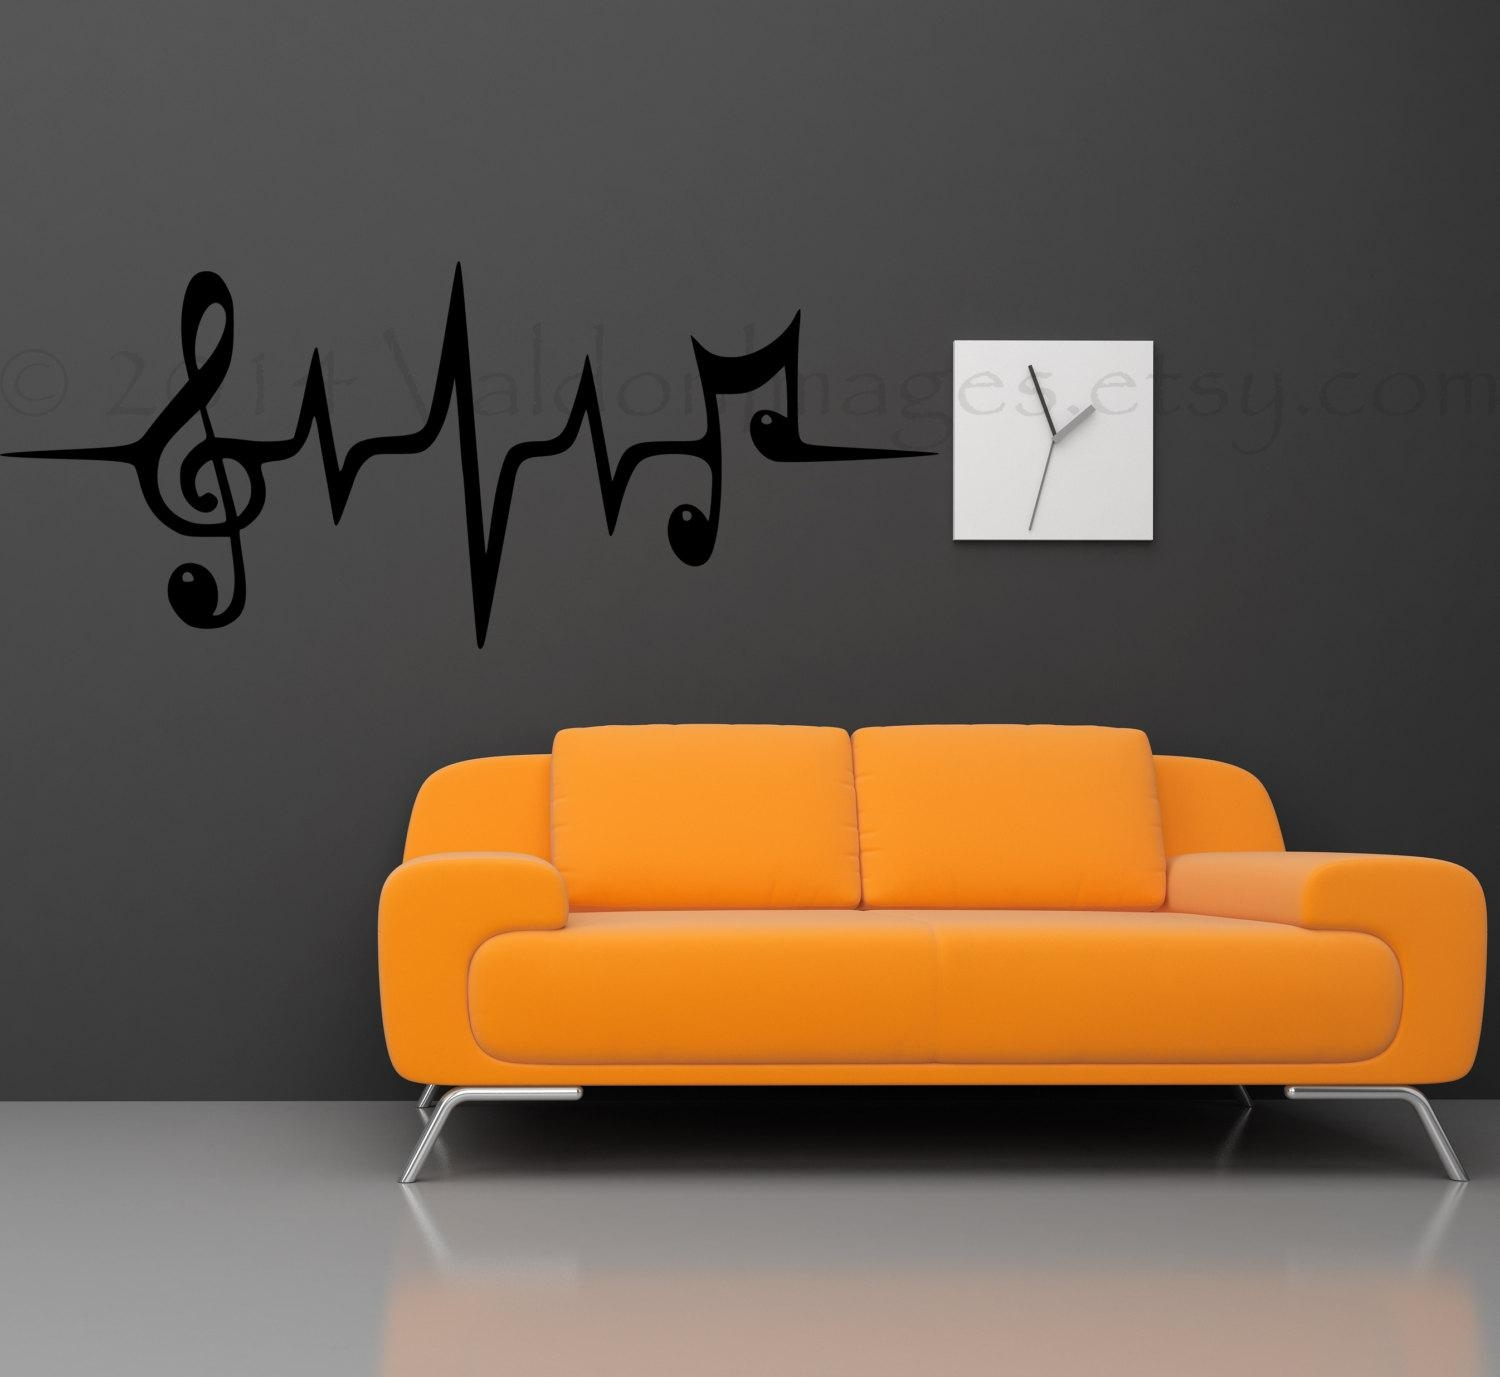 Music Note Wall Decal Music Wall Decal Heartbeat Wall In Music Notes Wall Art Decals (View 6 of 20)